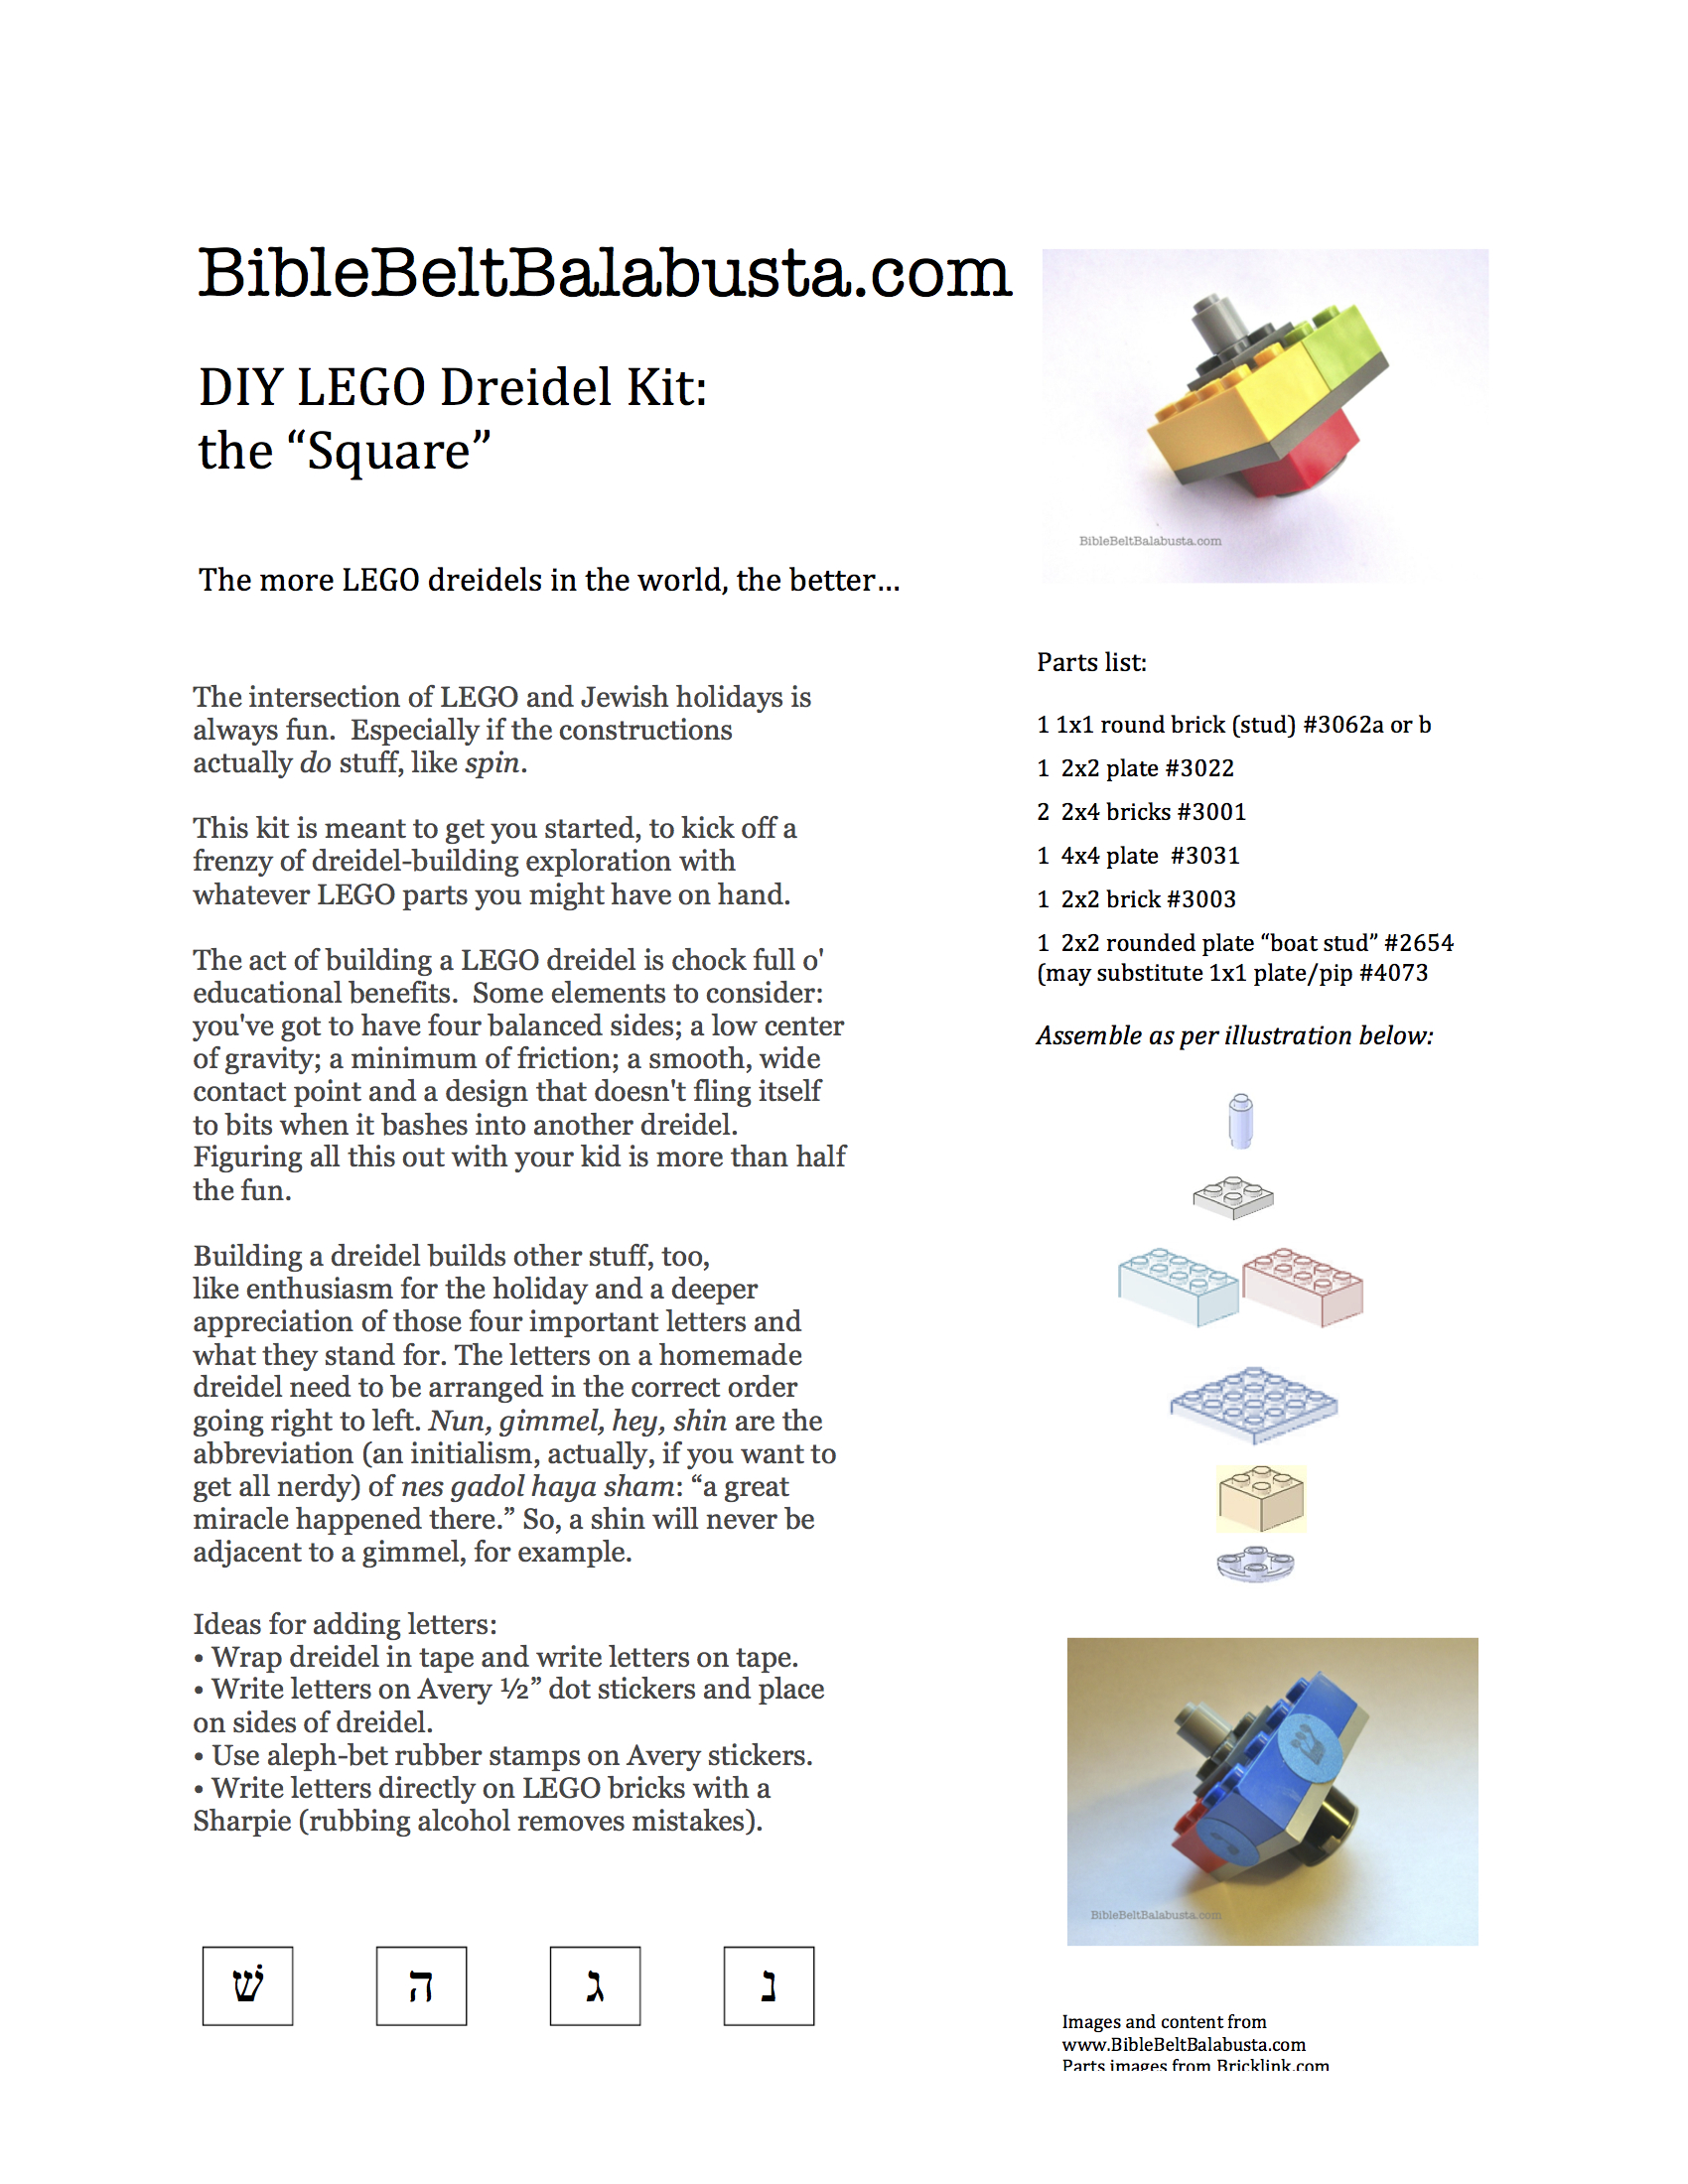 image regarding Dreidel Game Rules Printable titled Printable how-in the direction of for straightforward LEGO dreidel Bible Belt Balabusta